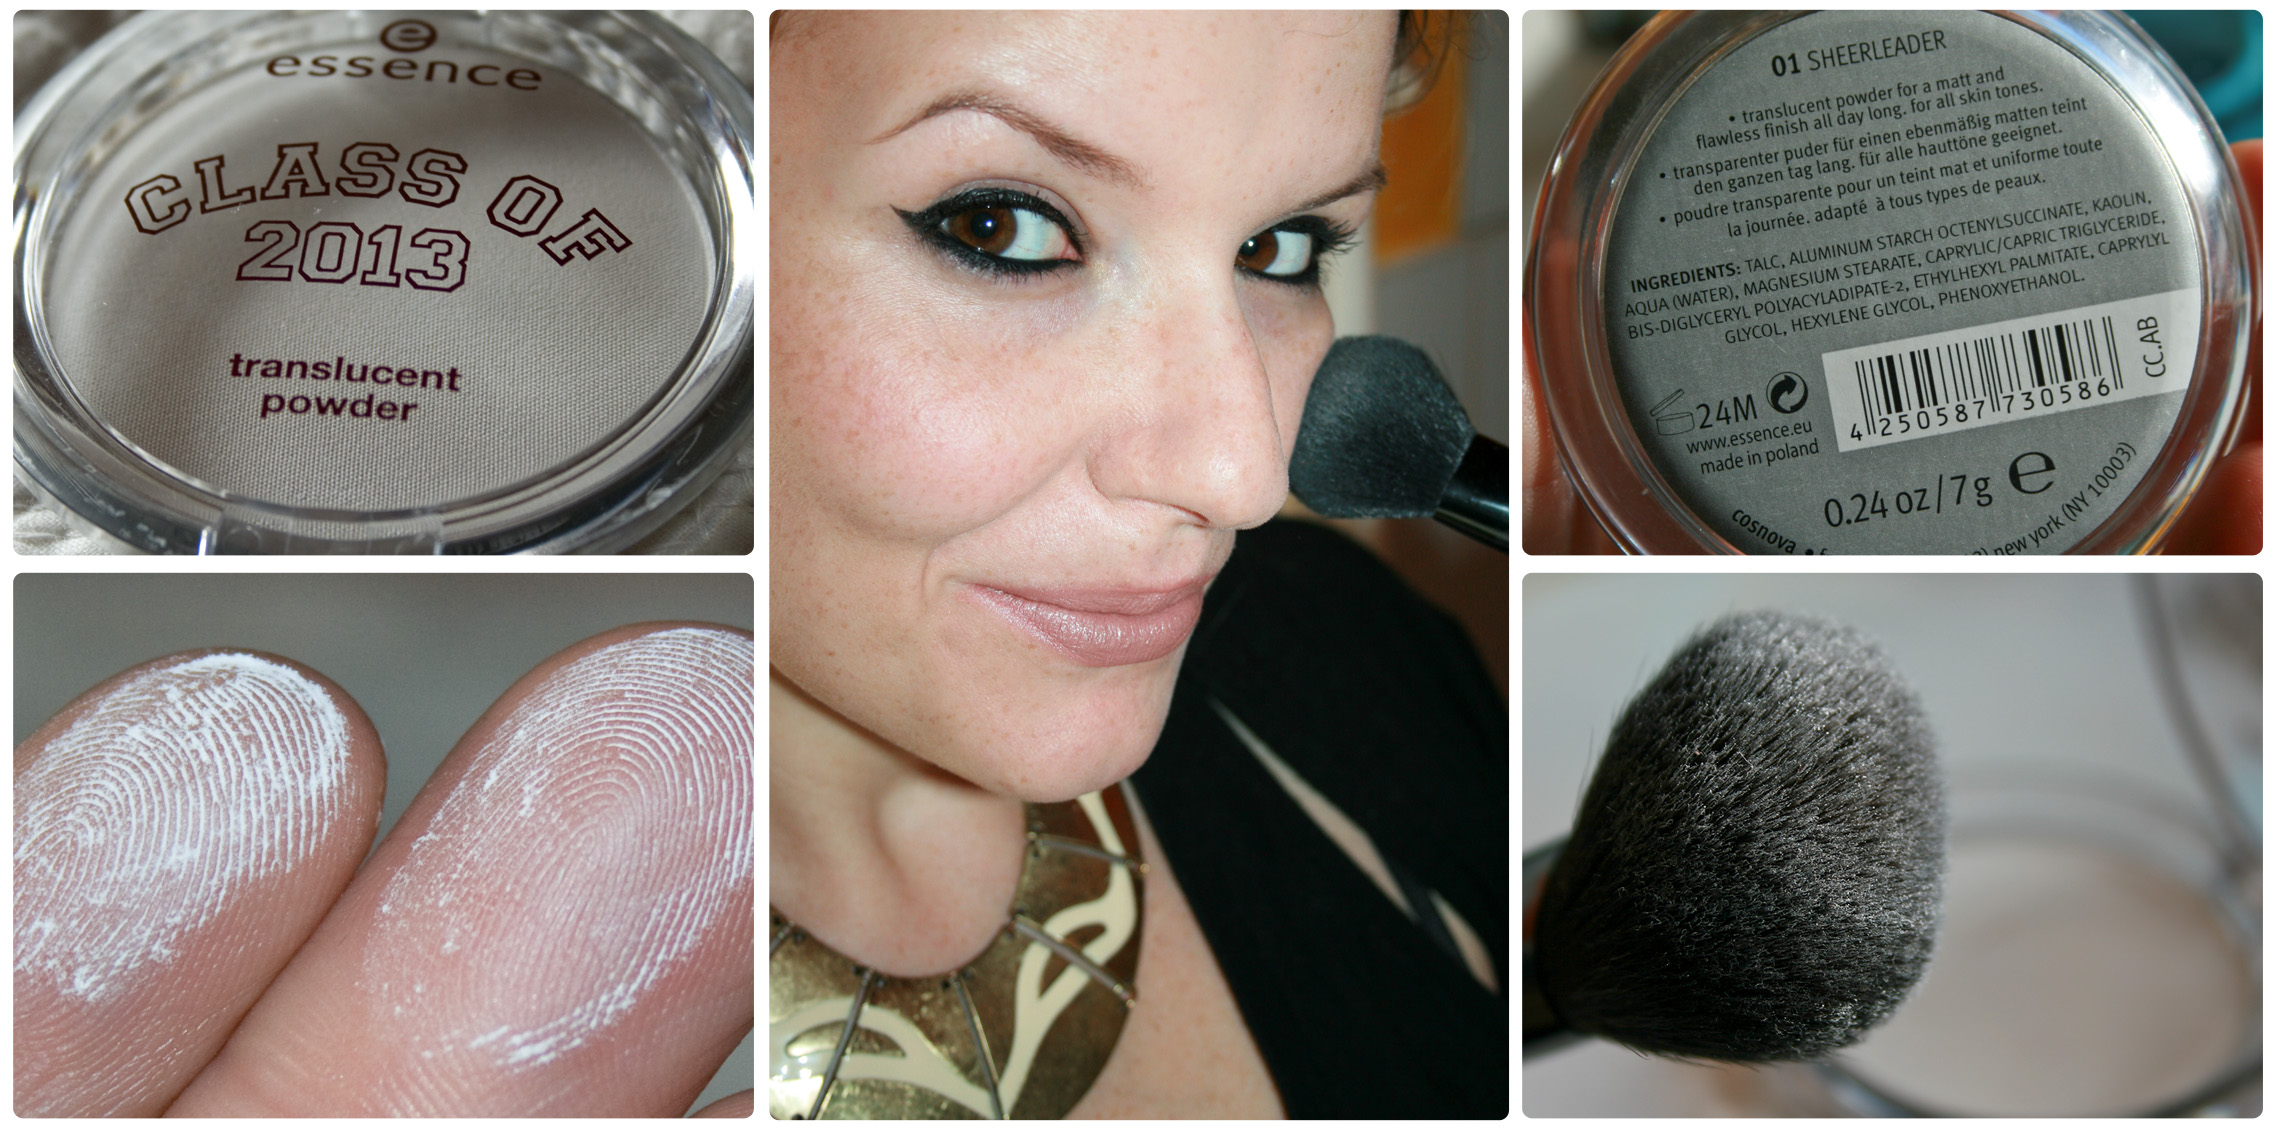 "essence ""CLASS OF 2013"" translucent powder 01 sheerleader - mattierender Puder"